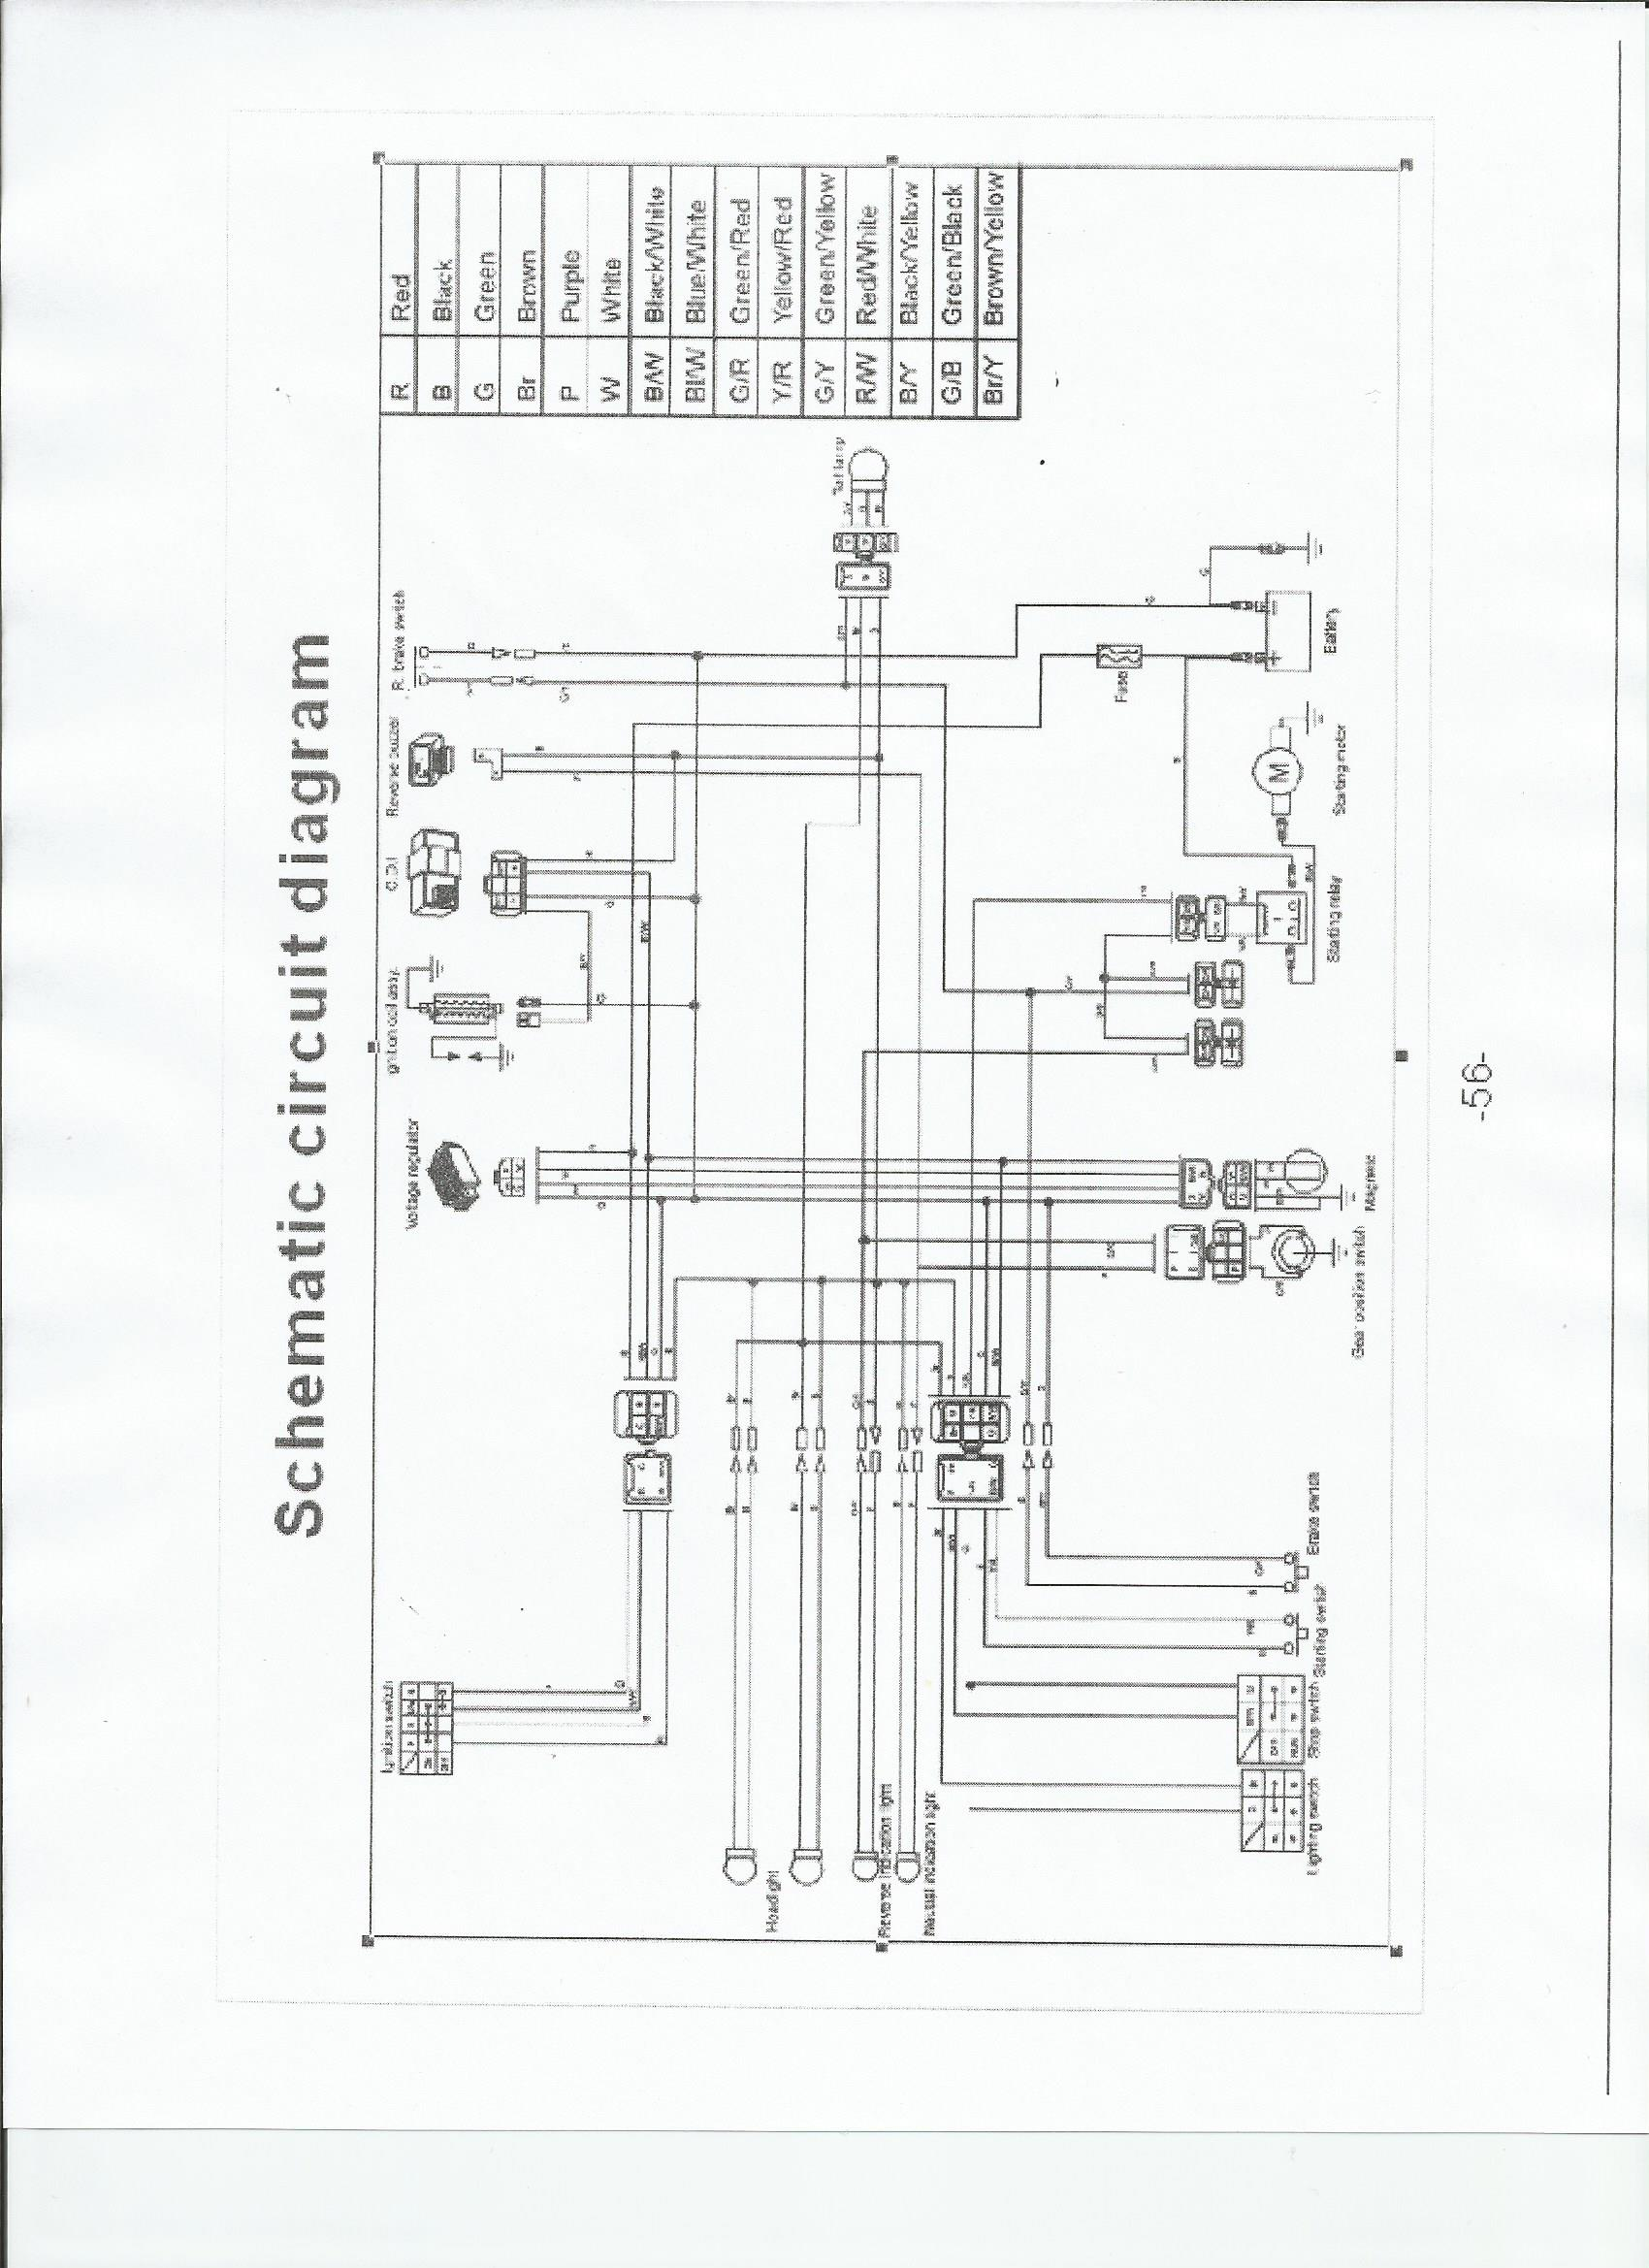 taotao mini and youth atv wiring schematic u2013 familygokarts supporttao tao wiring schematic jpg [ 1700 x 2338 Pixel ]